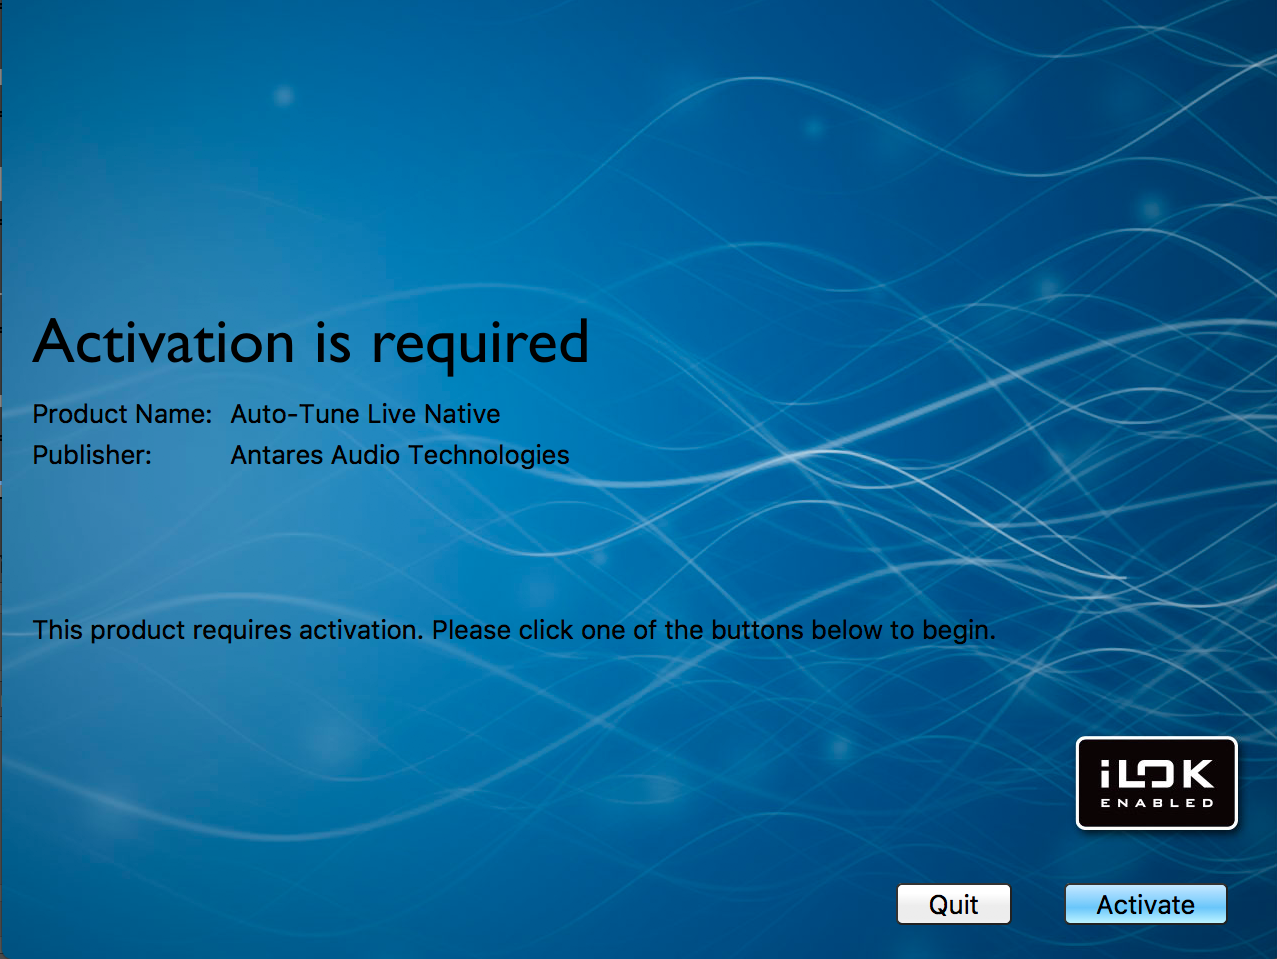 iLok Activation is required screen